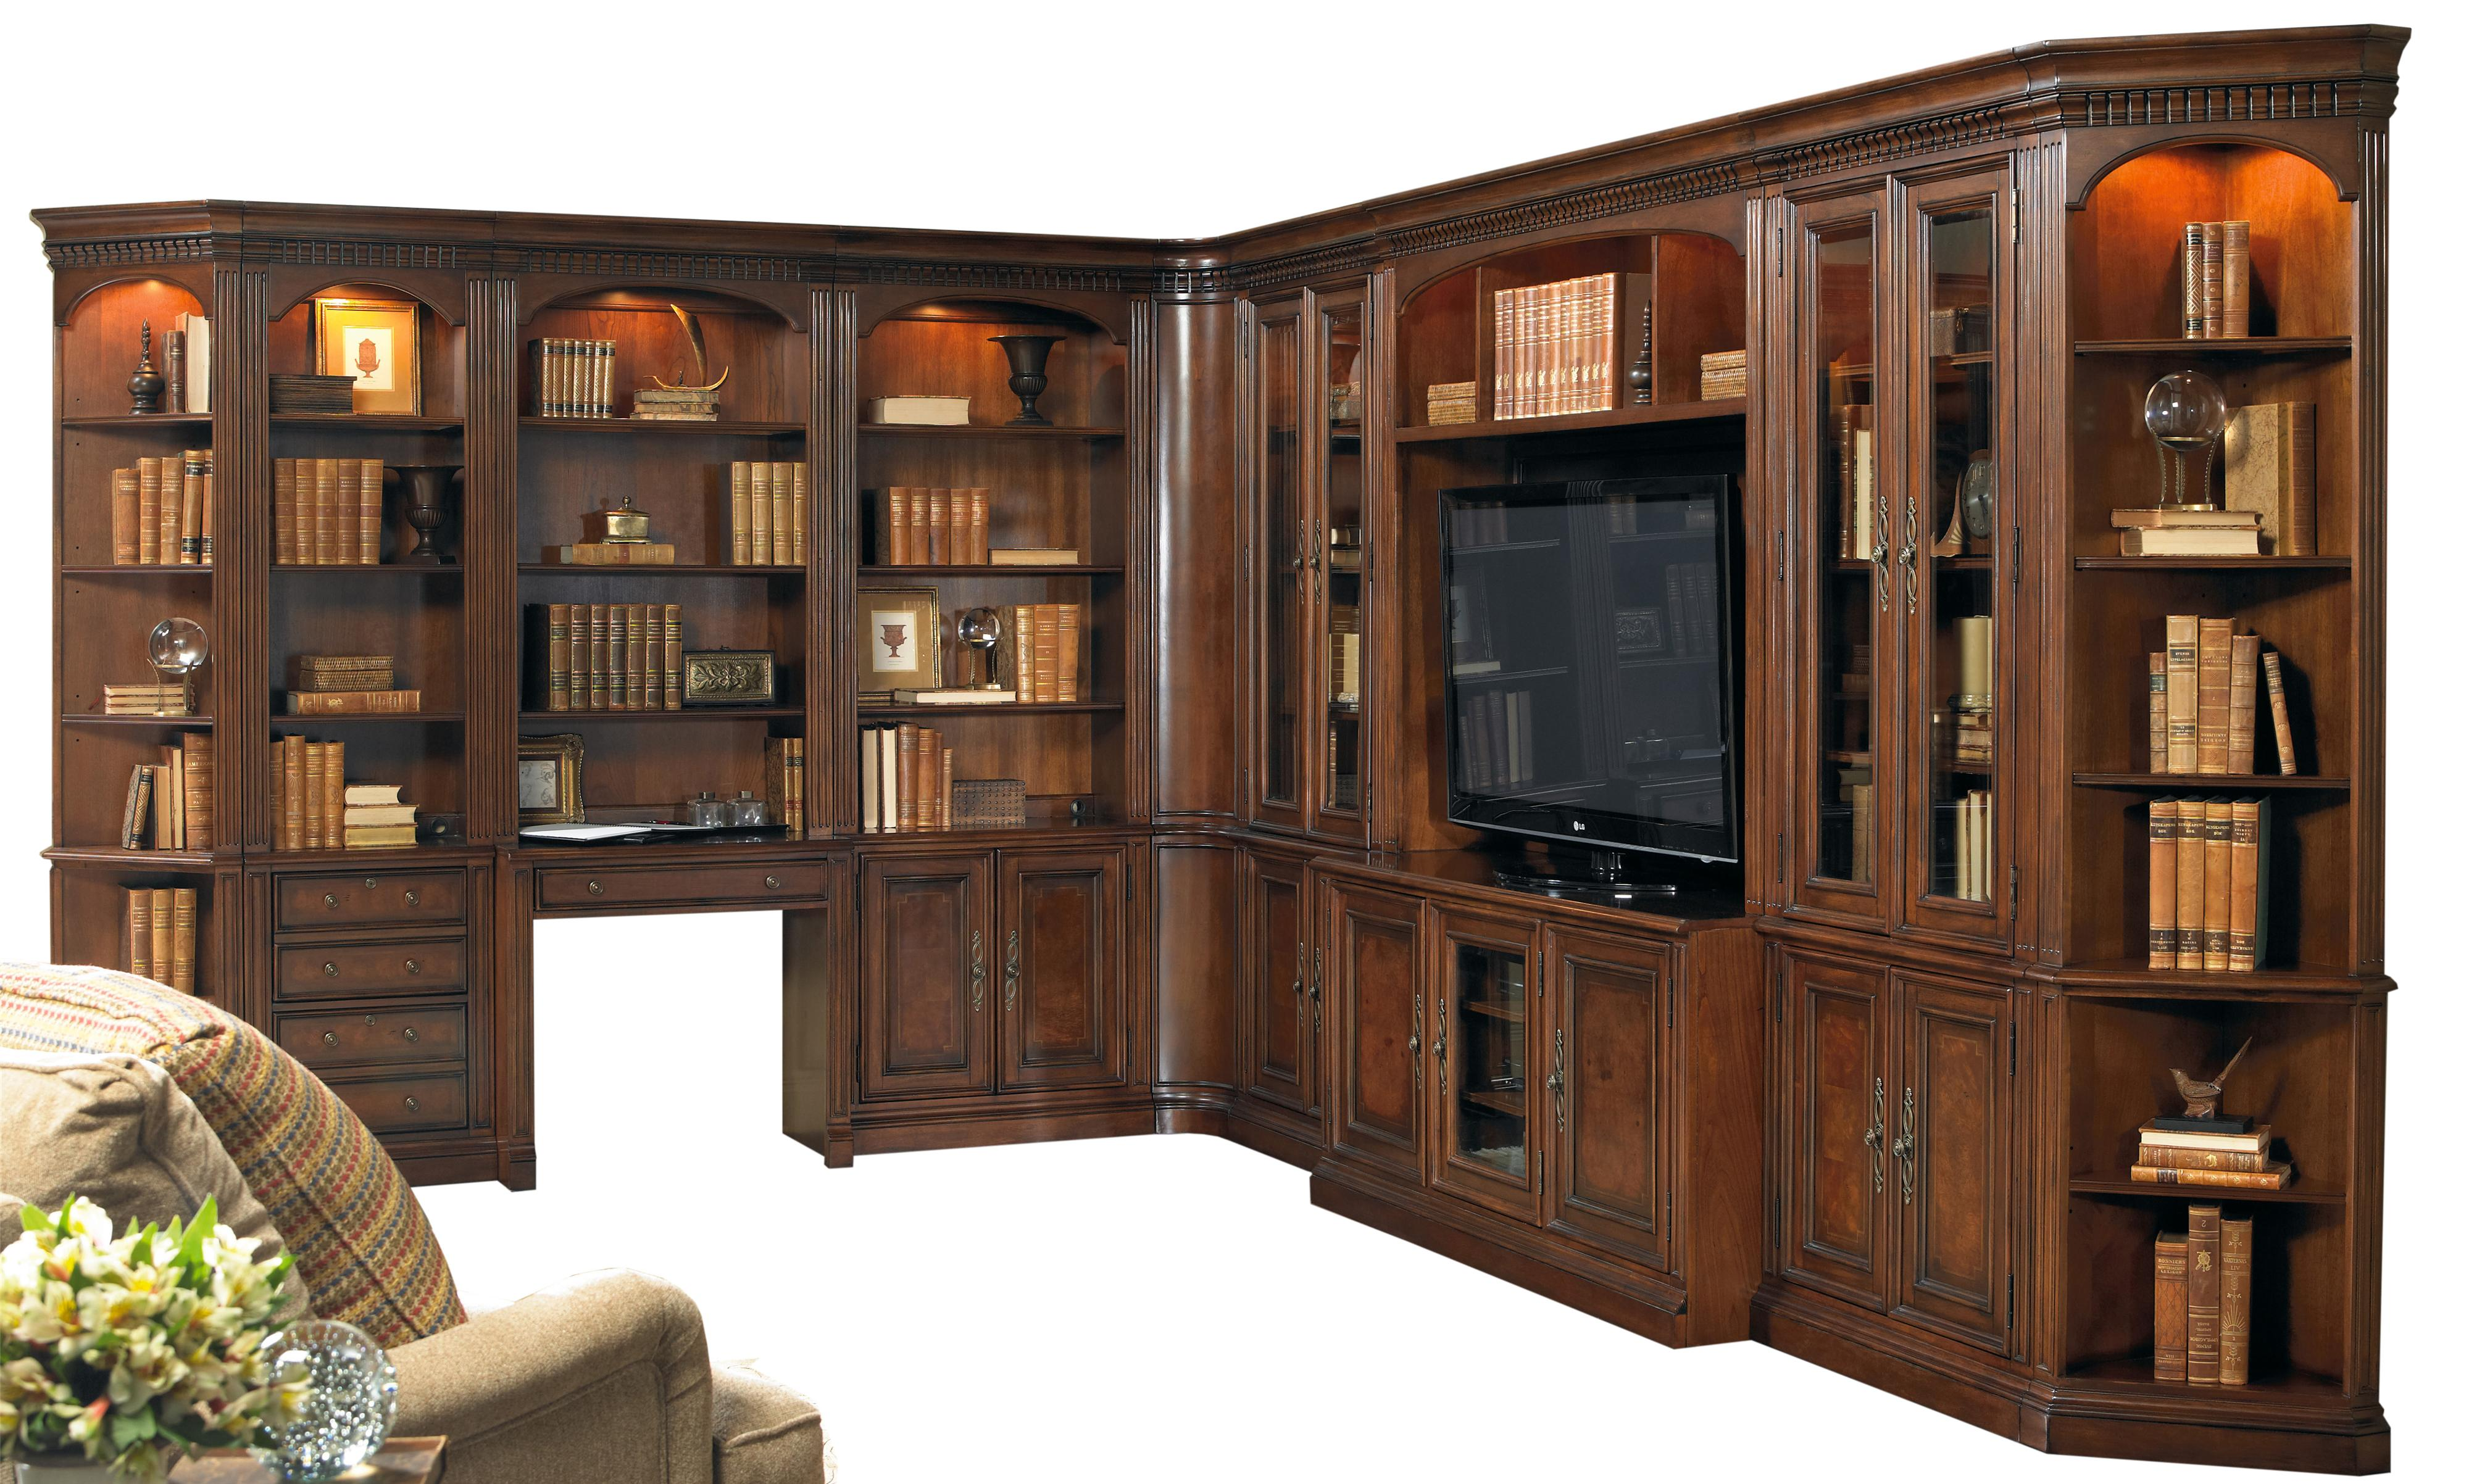 European Renaissance II Grand Scale Corner Wall Unit by Hooker Furniture at Baer's Furniture